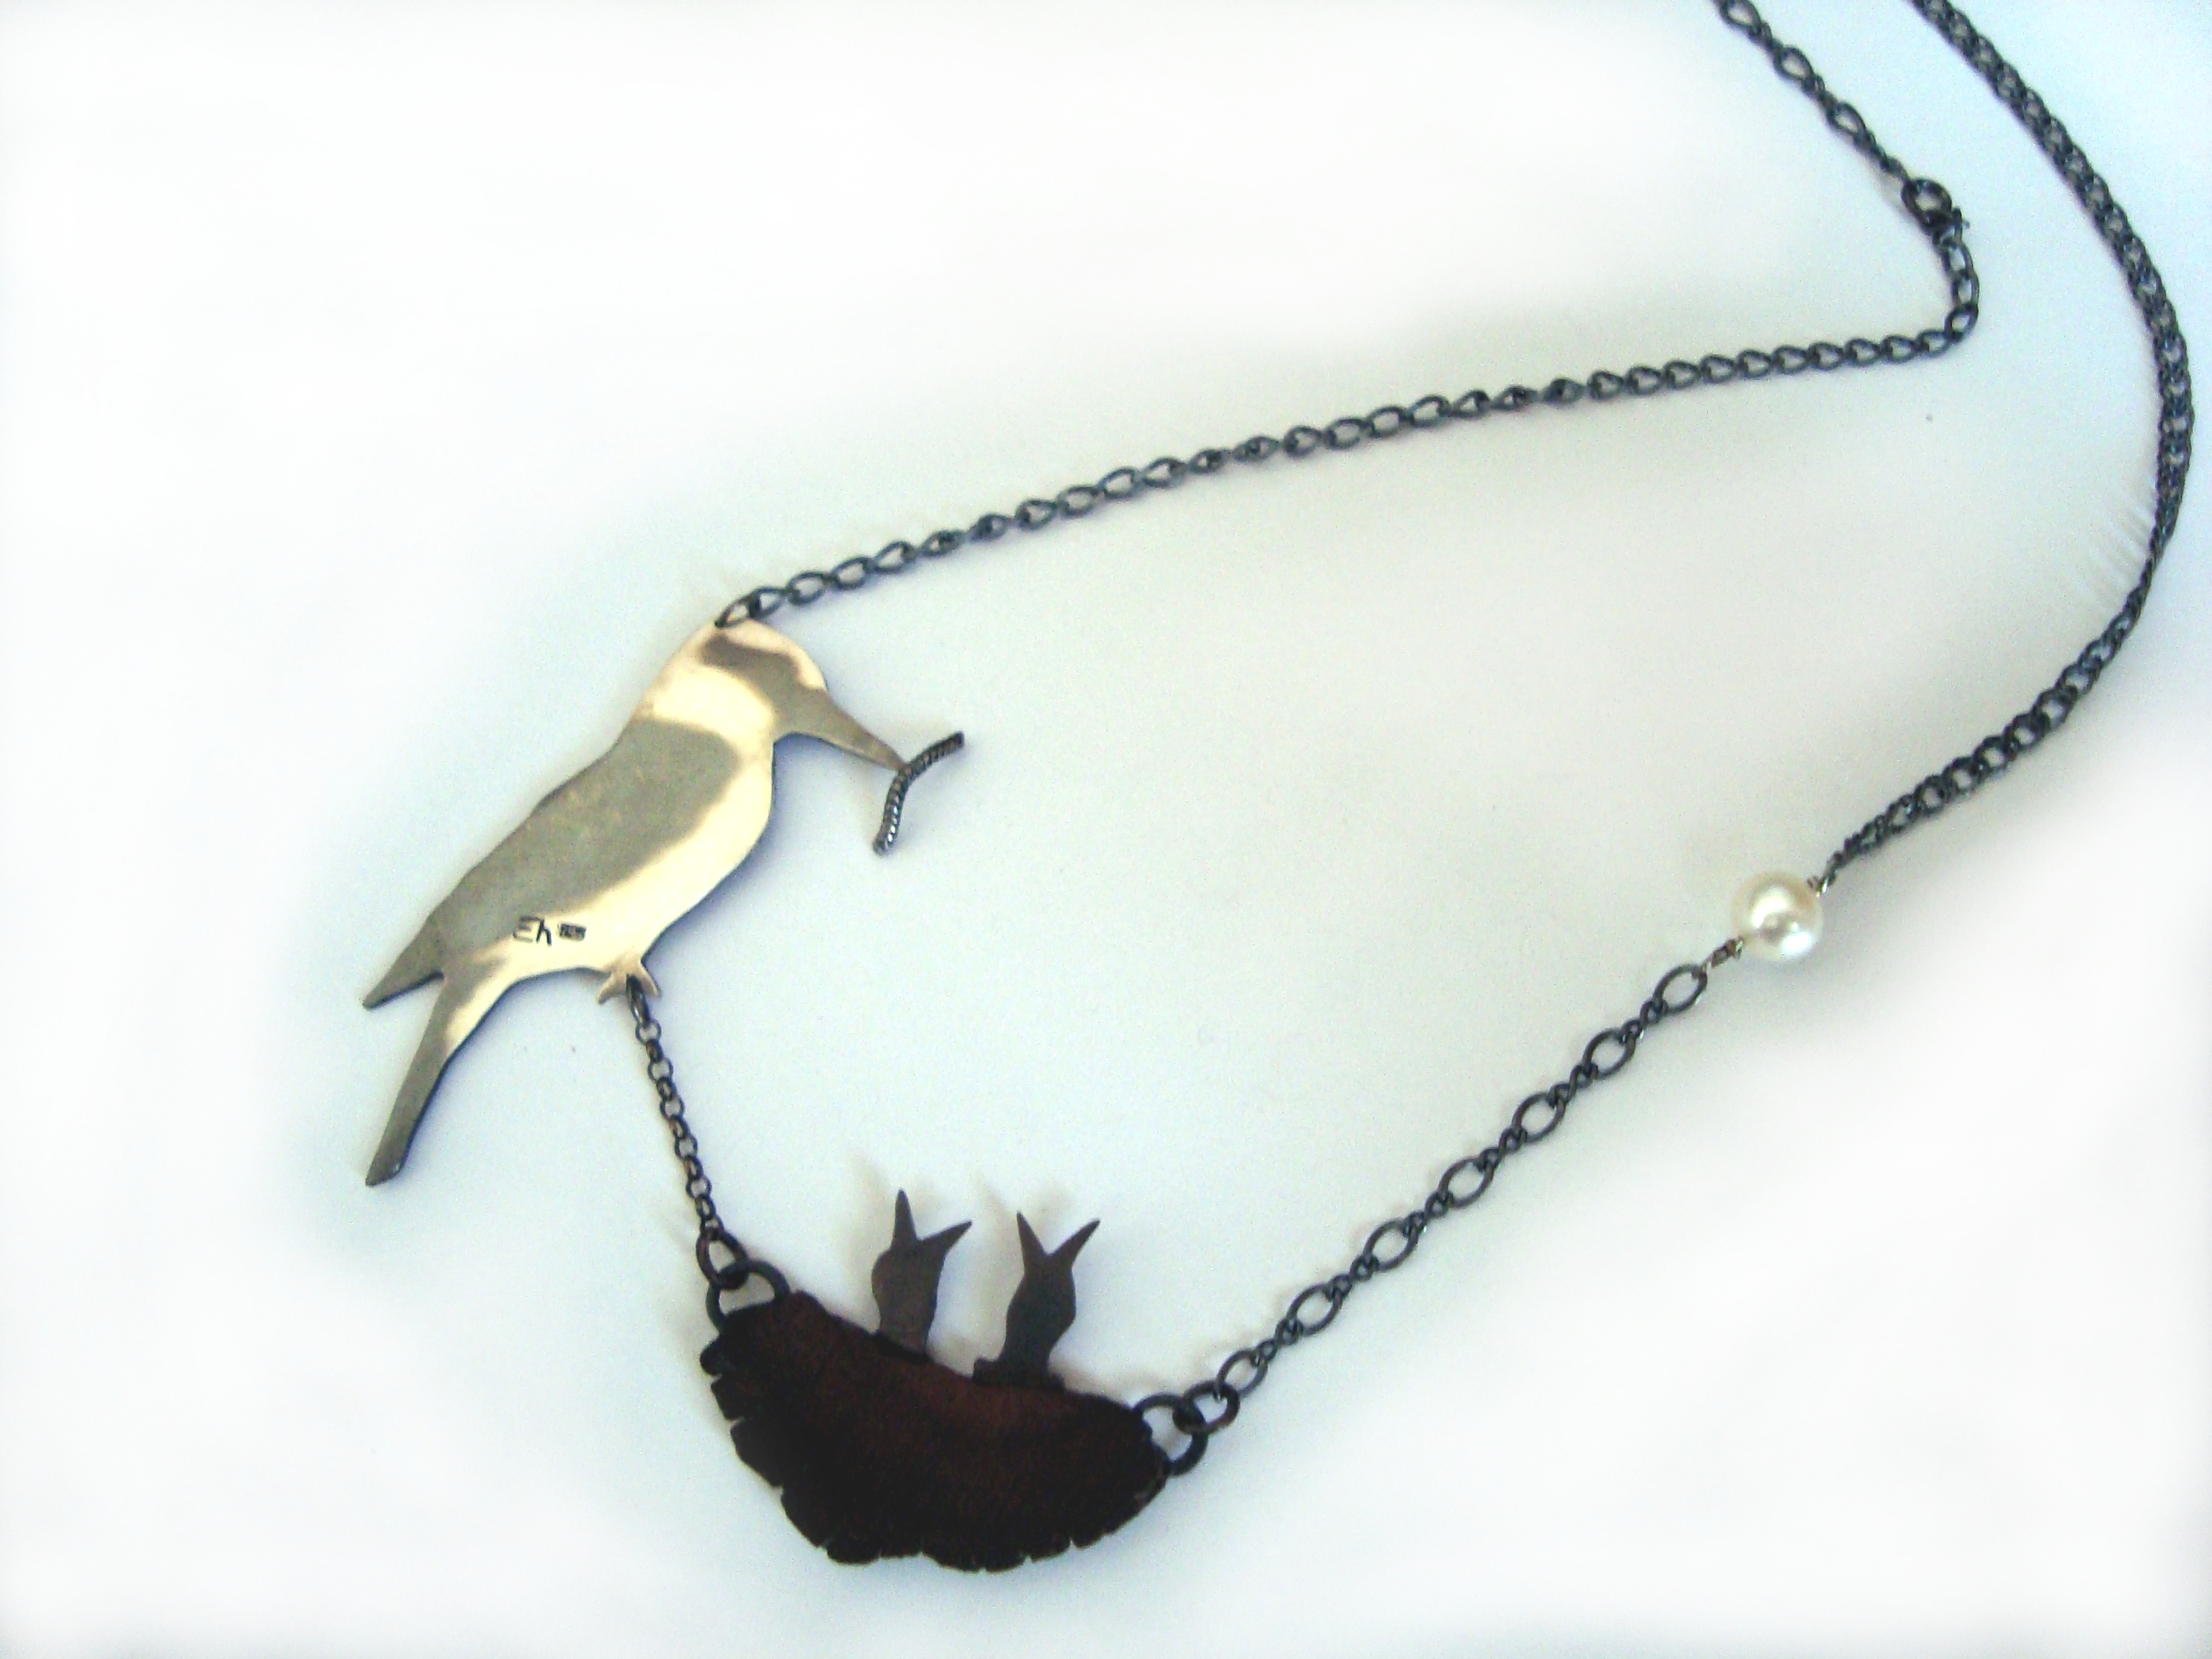 Kookaburra and babies Necklace - Oxidised Silver, Wood and Pearl